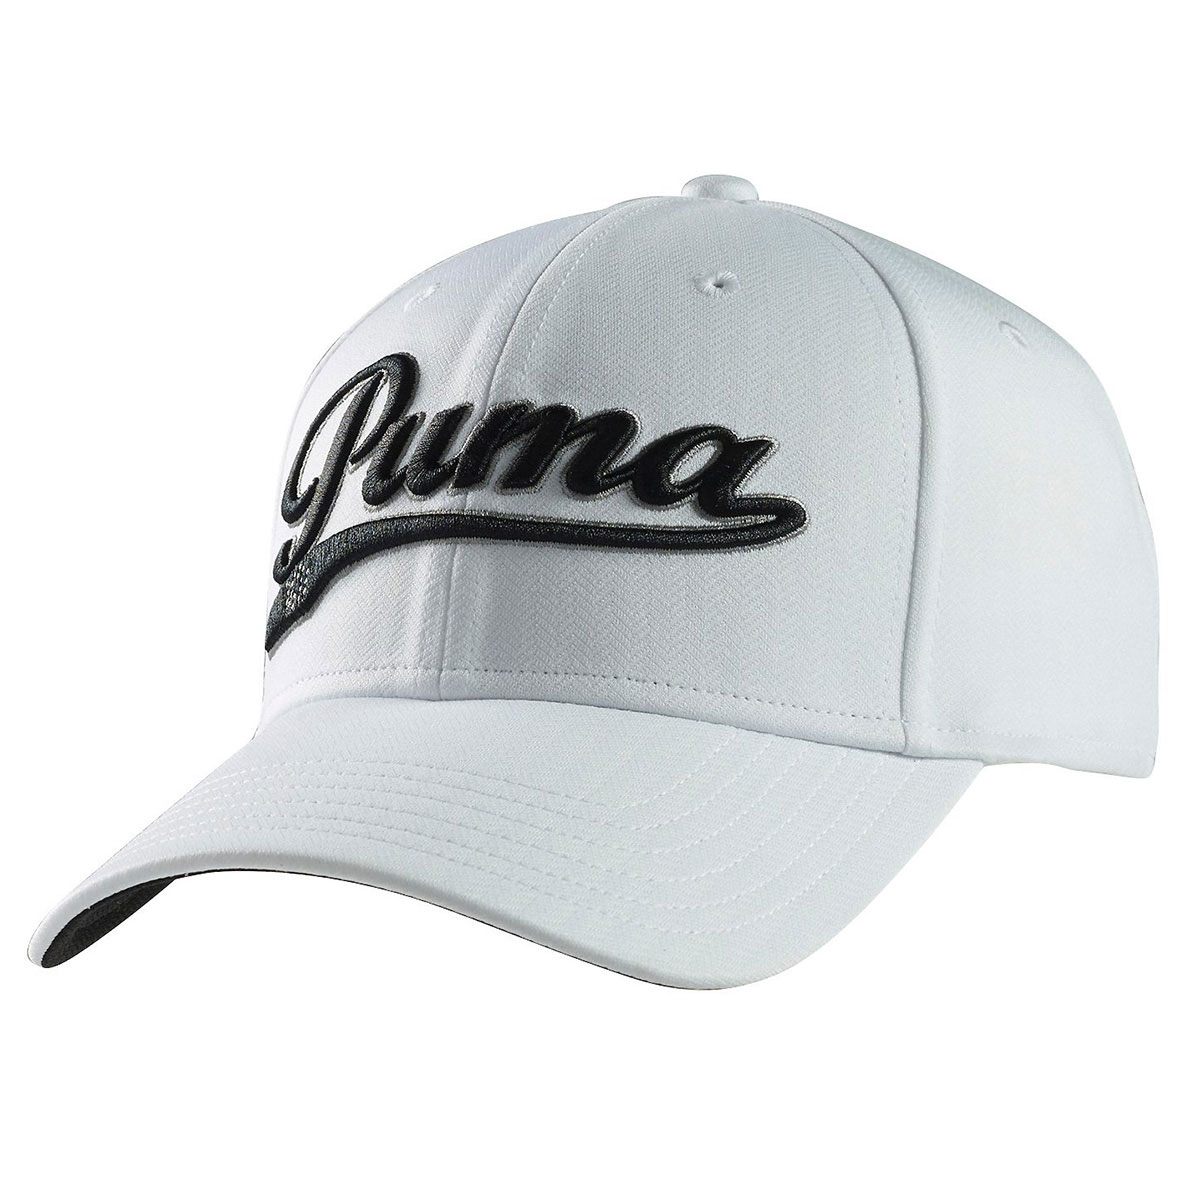 golf script city cool cell relaxed fit cap 908226